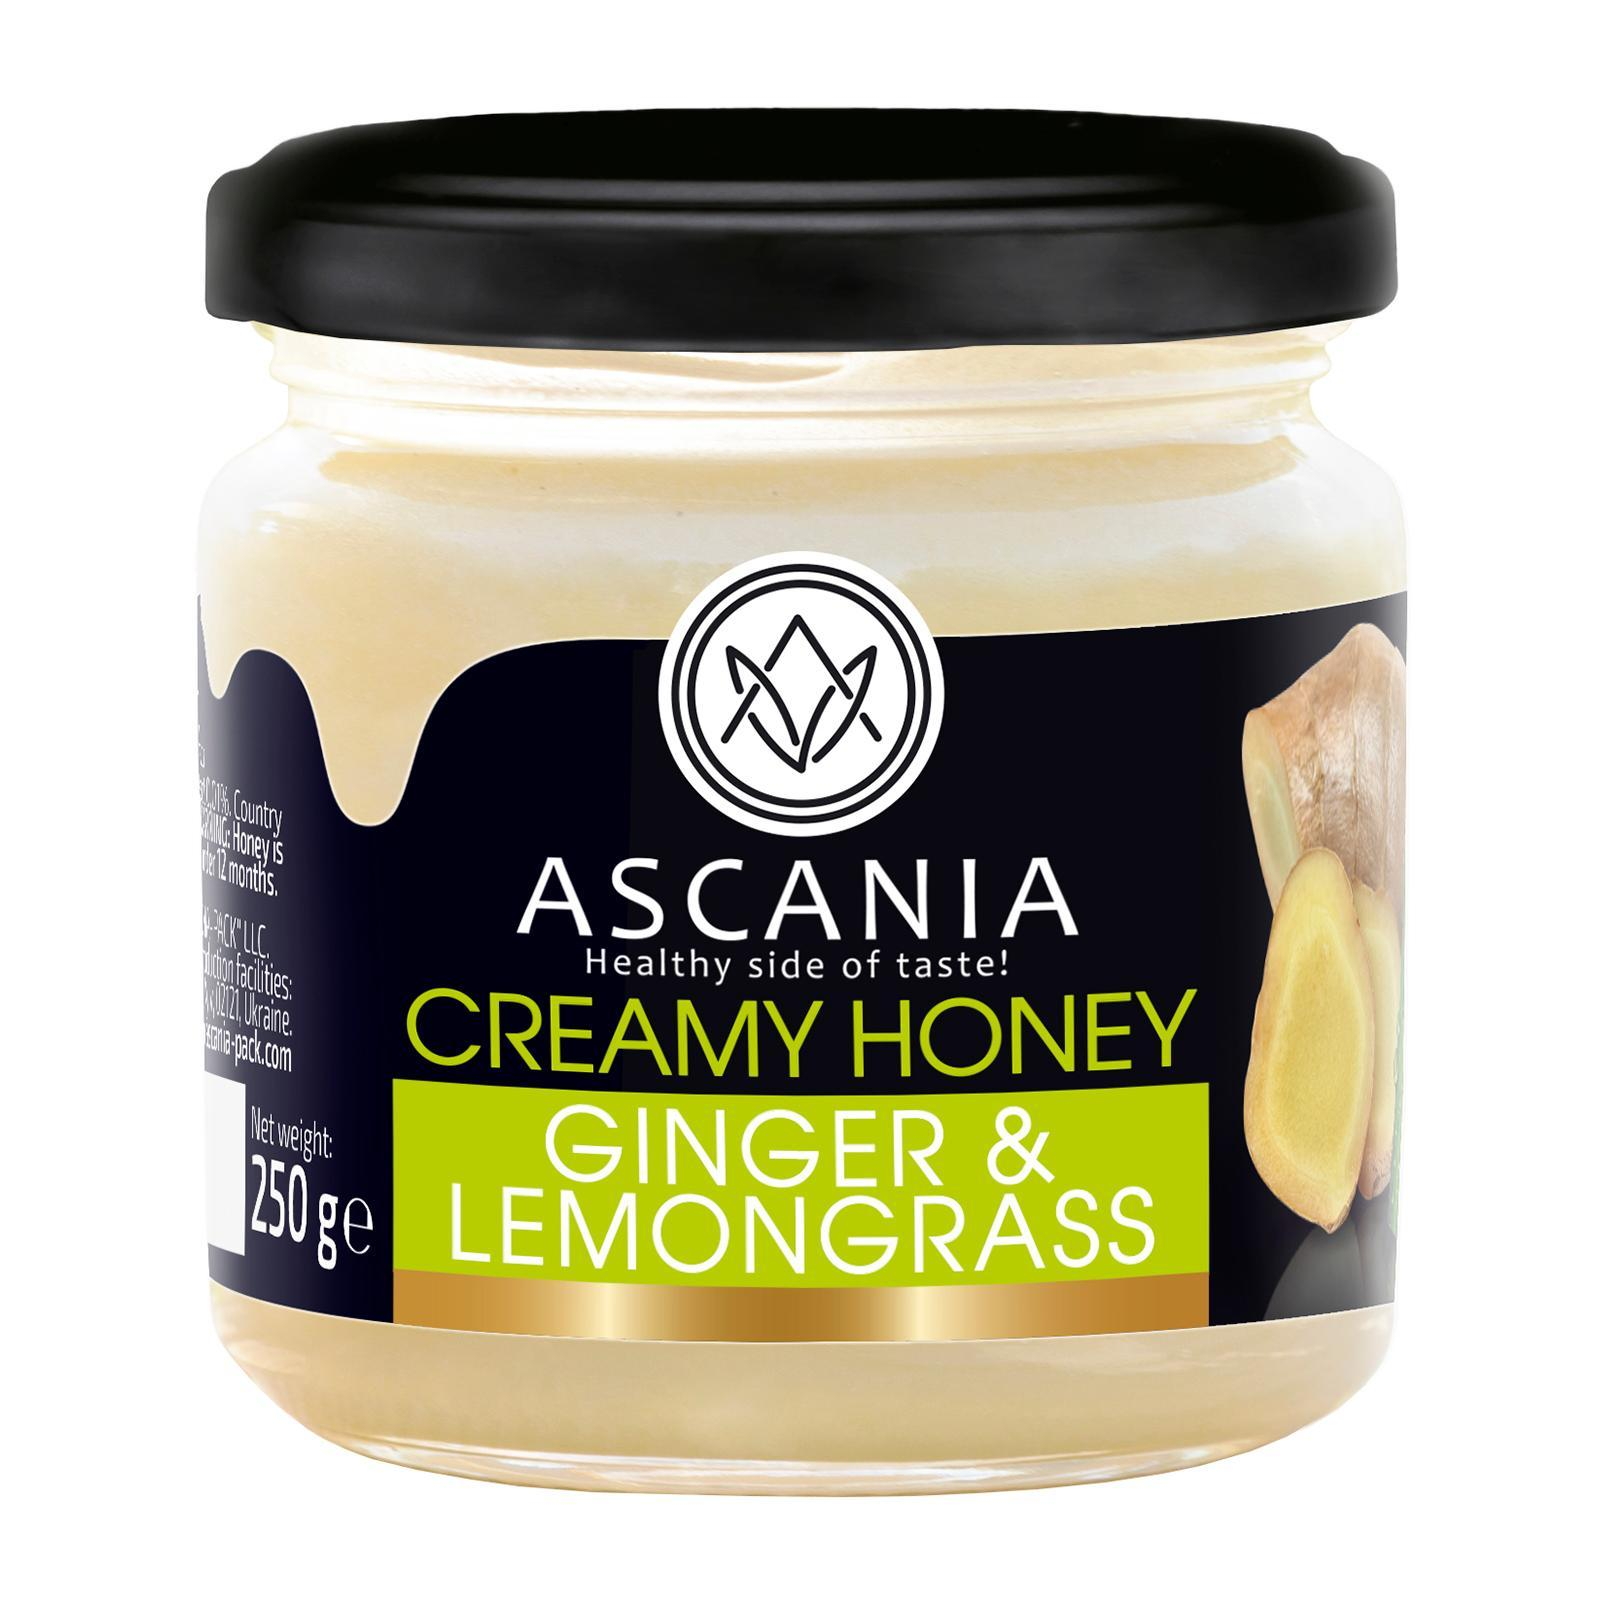 Ascania Creamy Honey With GINGER and LEMONGRASS